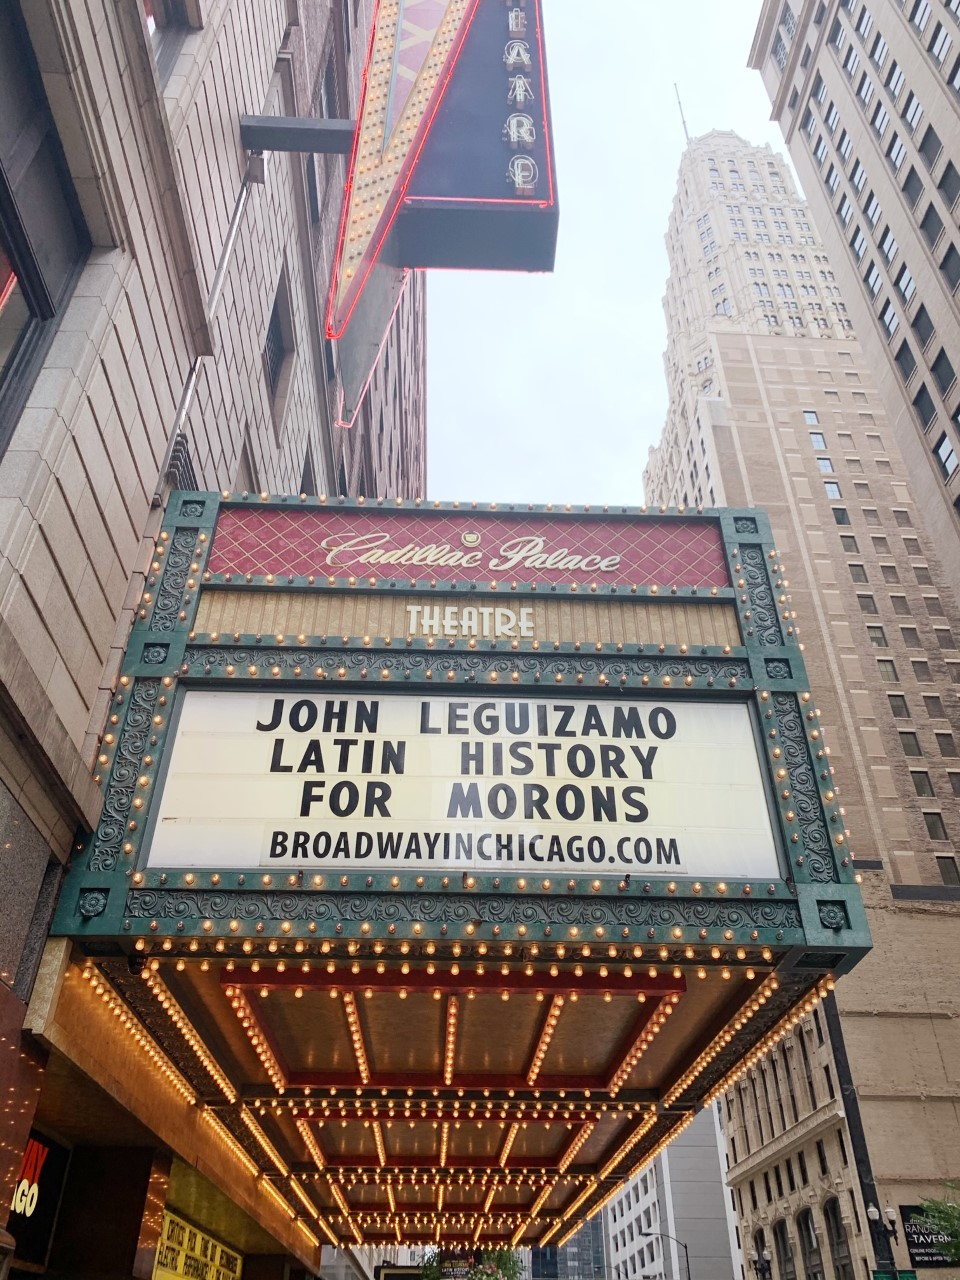 John Leguizamo Latin History for Morons Broadway in Chicgao